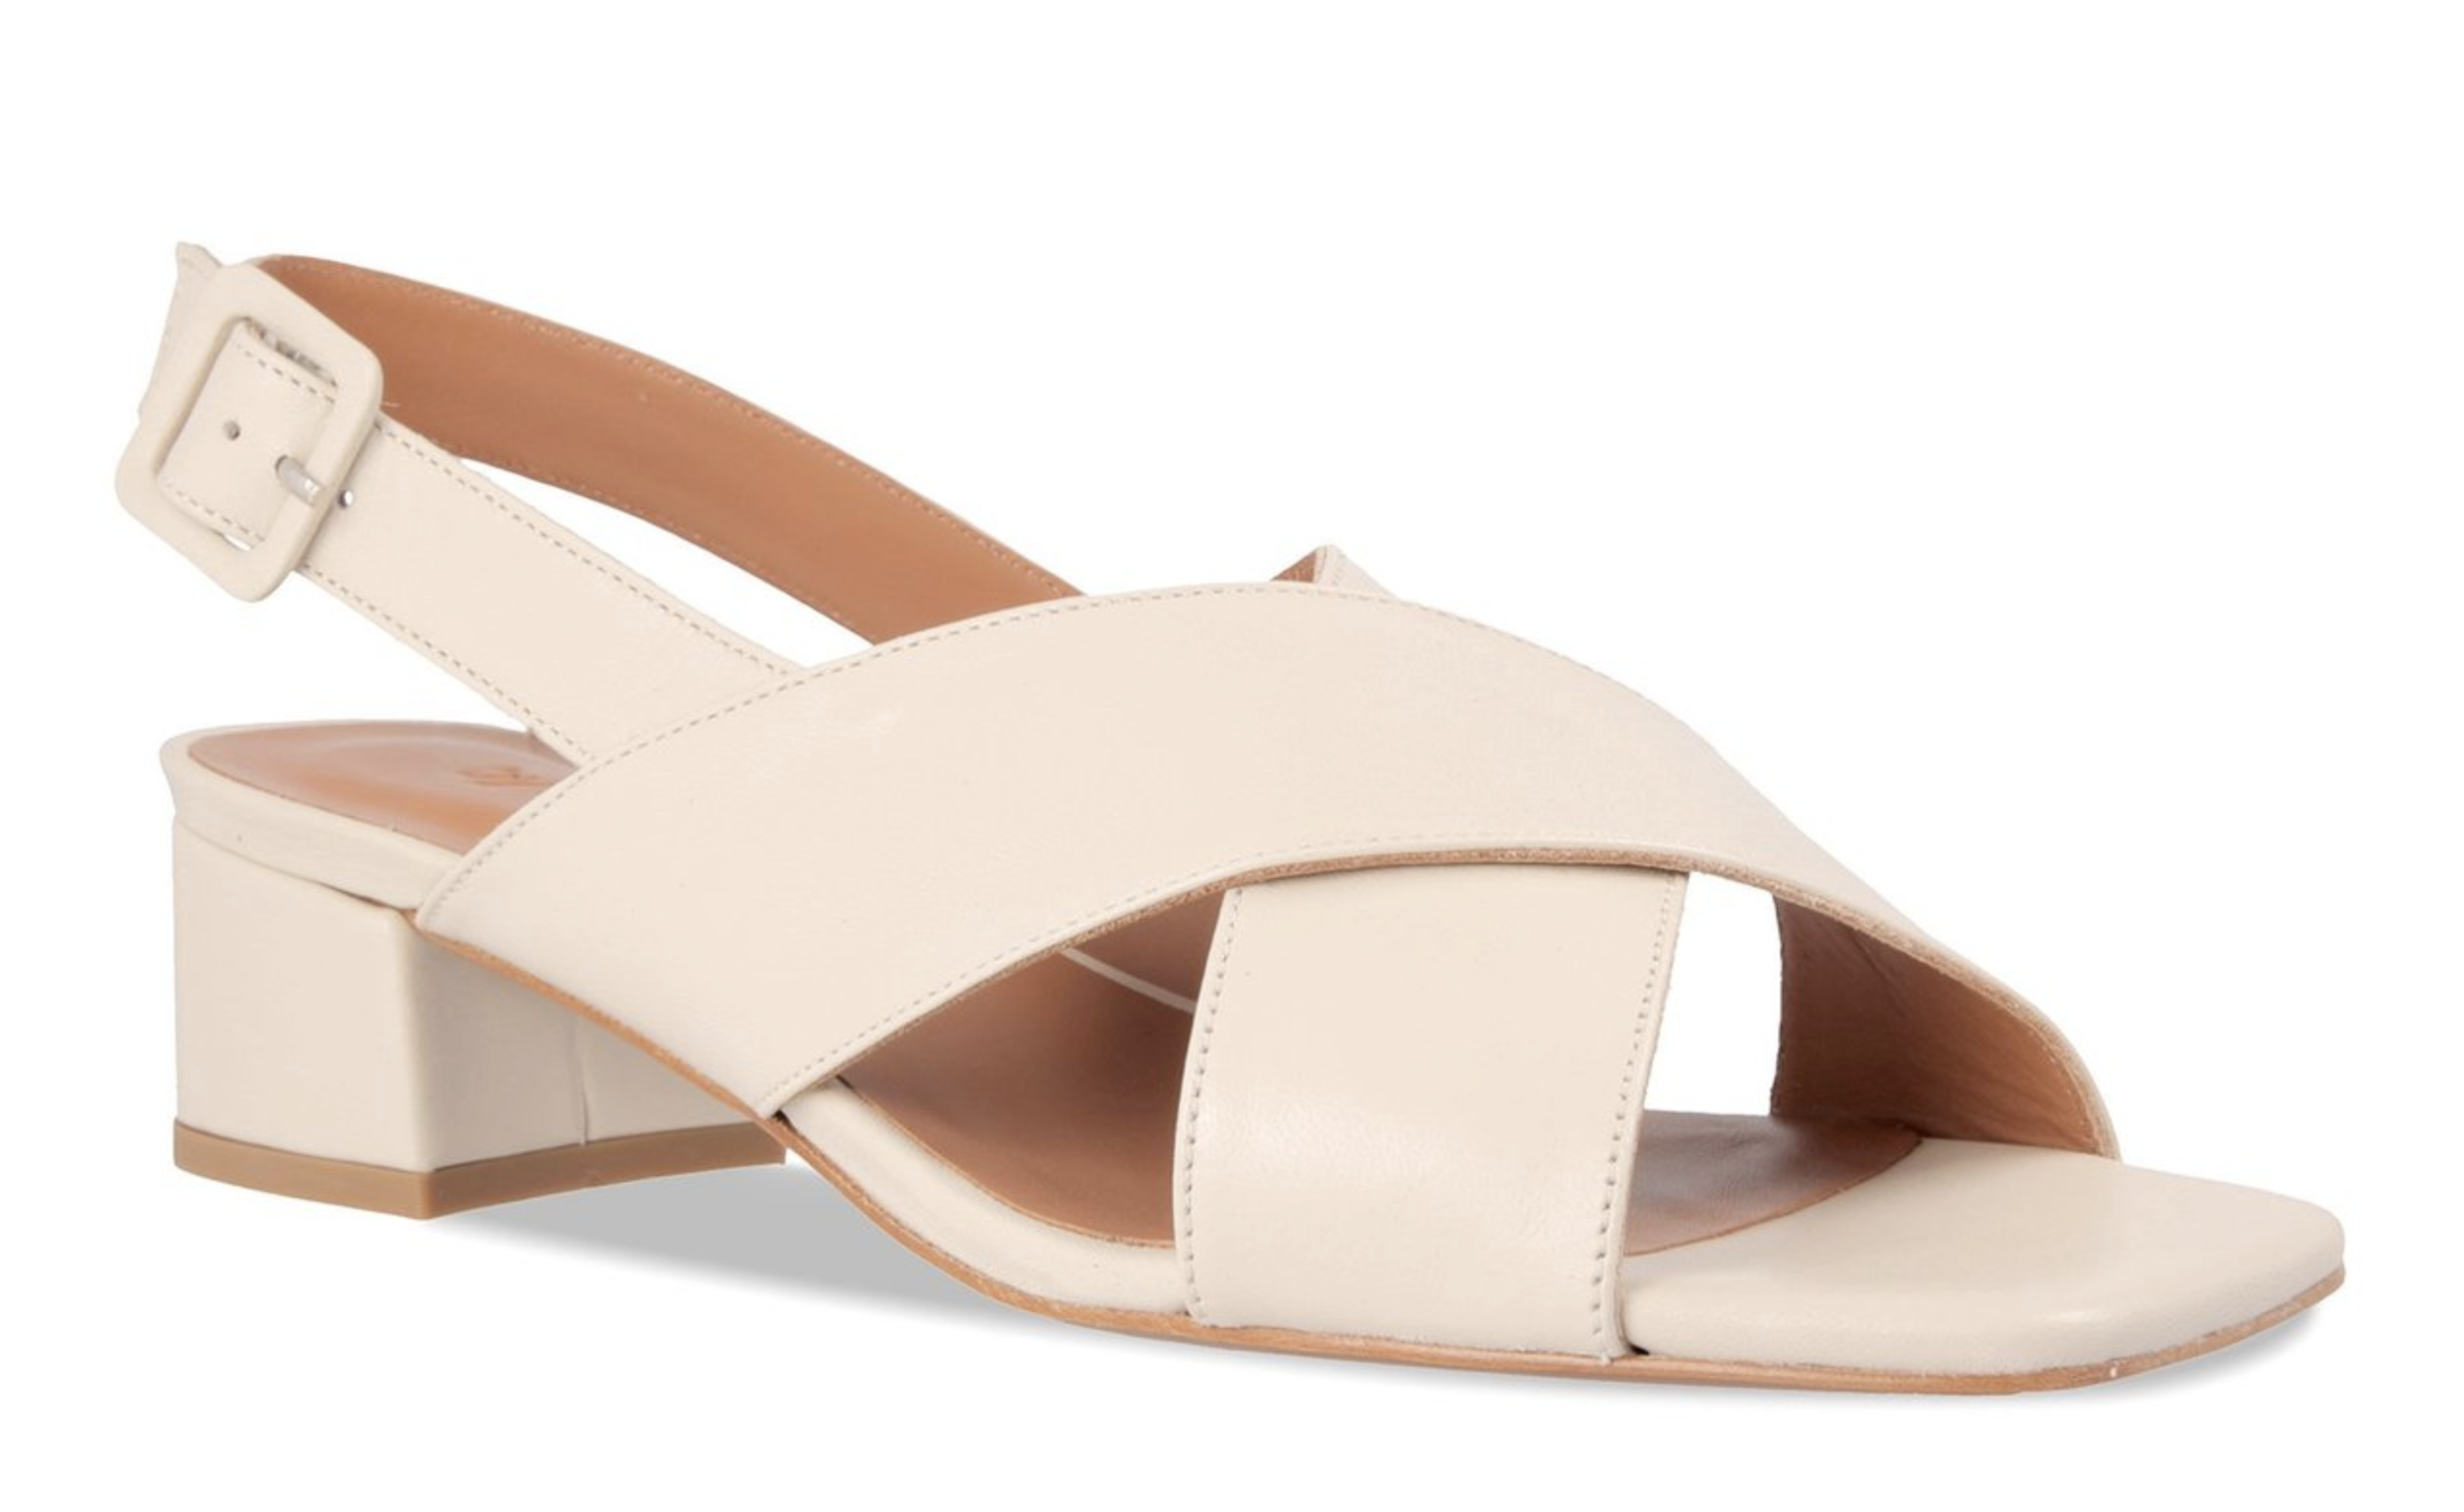 By Far - Anelia - Ooo, crossed straps are interesting. I appreciate the monochrome covered buckle too — a thoughtful detail. The color is called white and while they are def not beige, they are kinda off-white, which might work for me. These cost even more than the MNZs though, so boo.